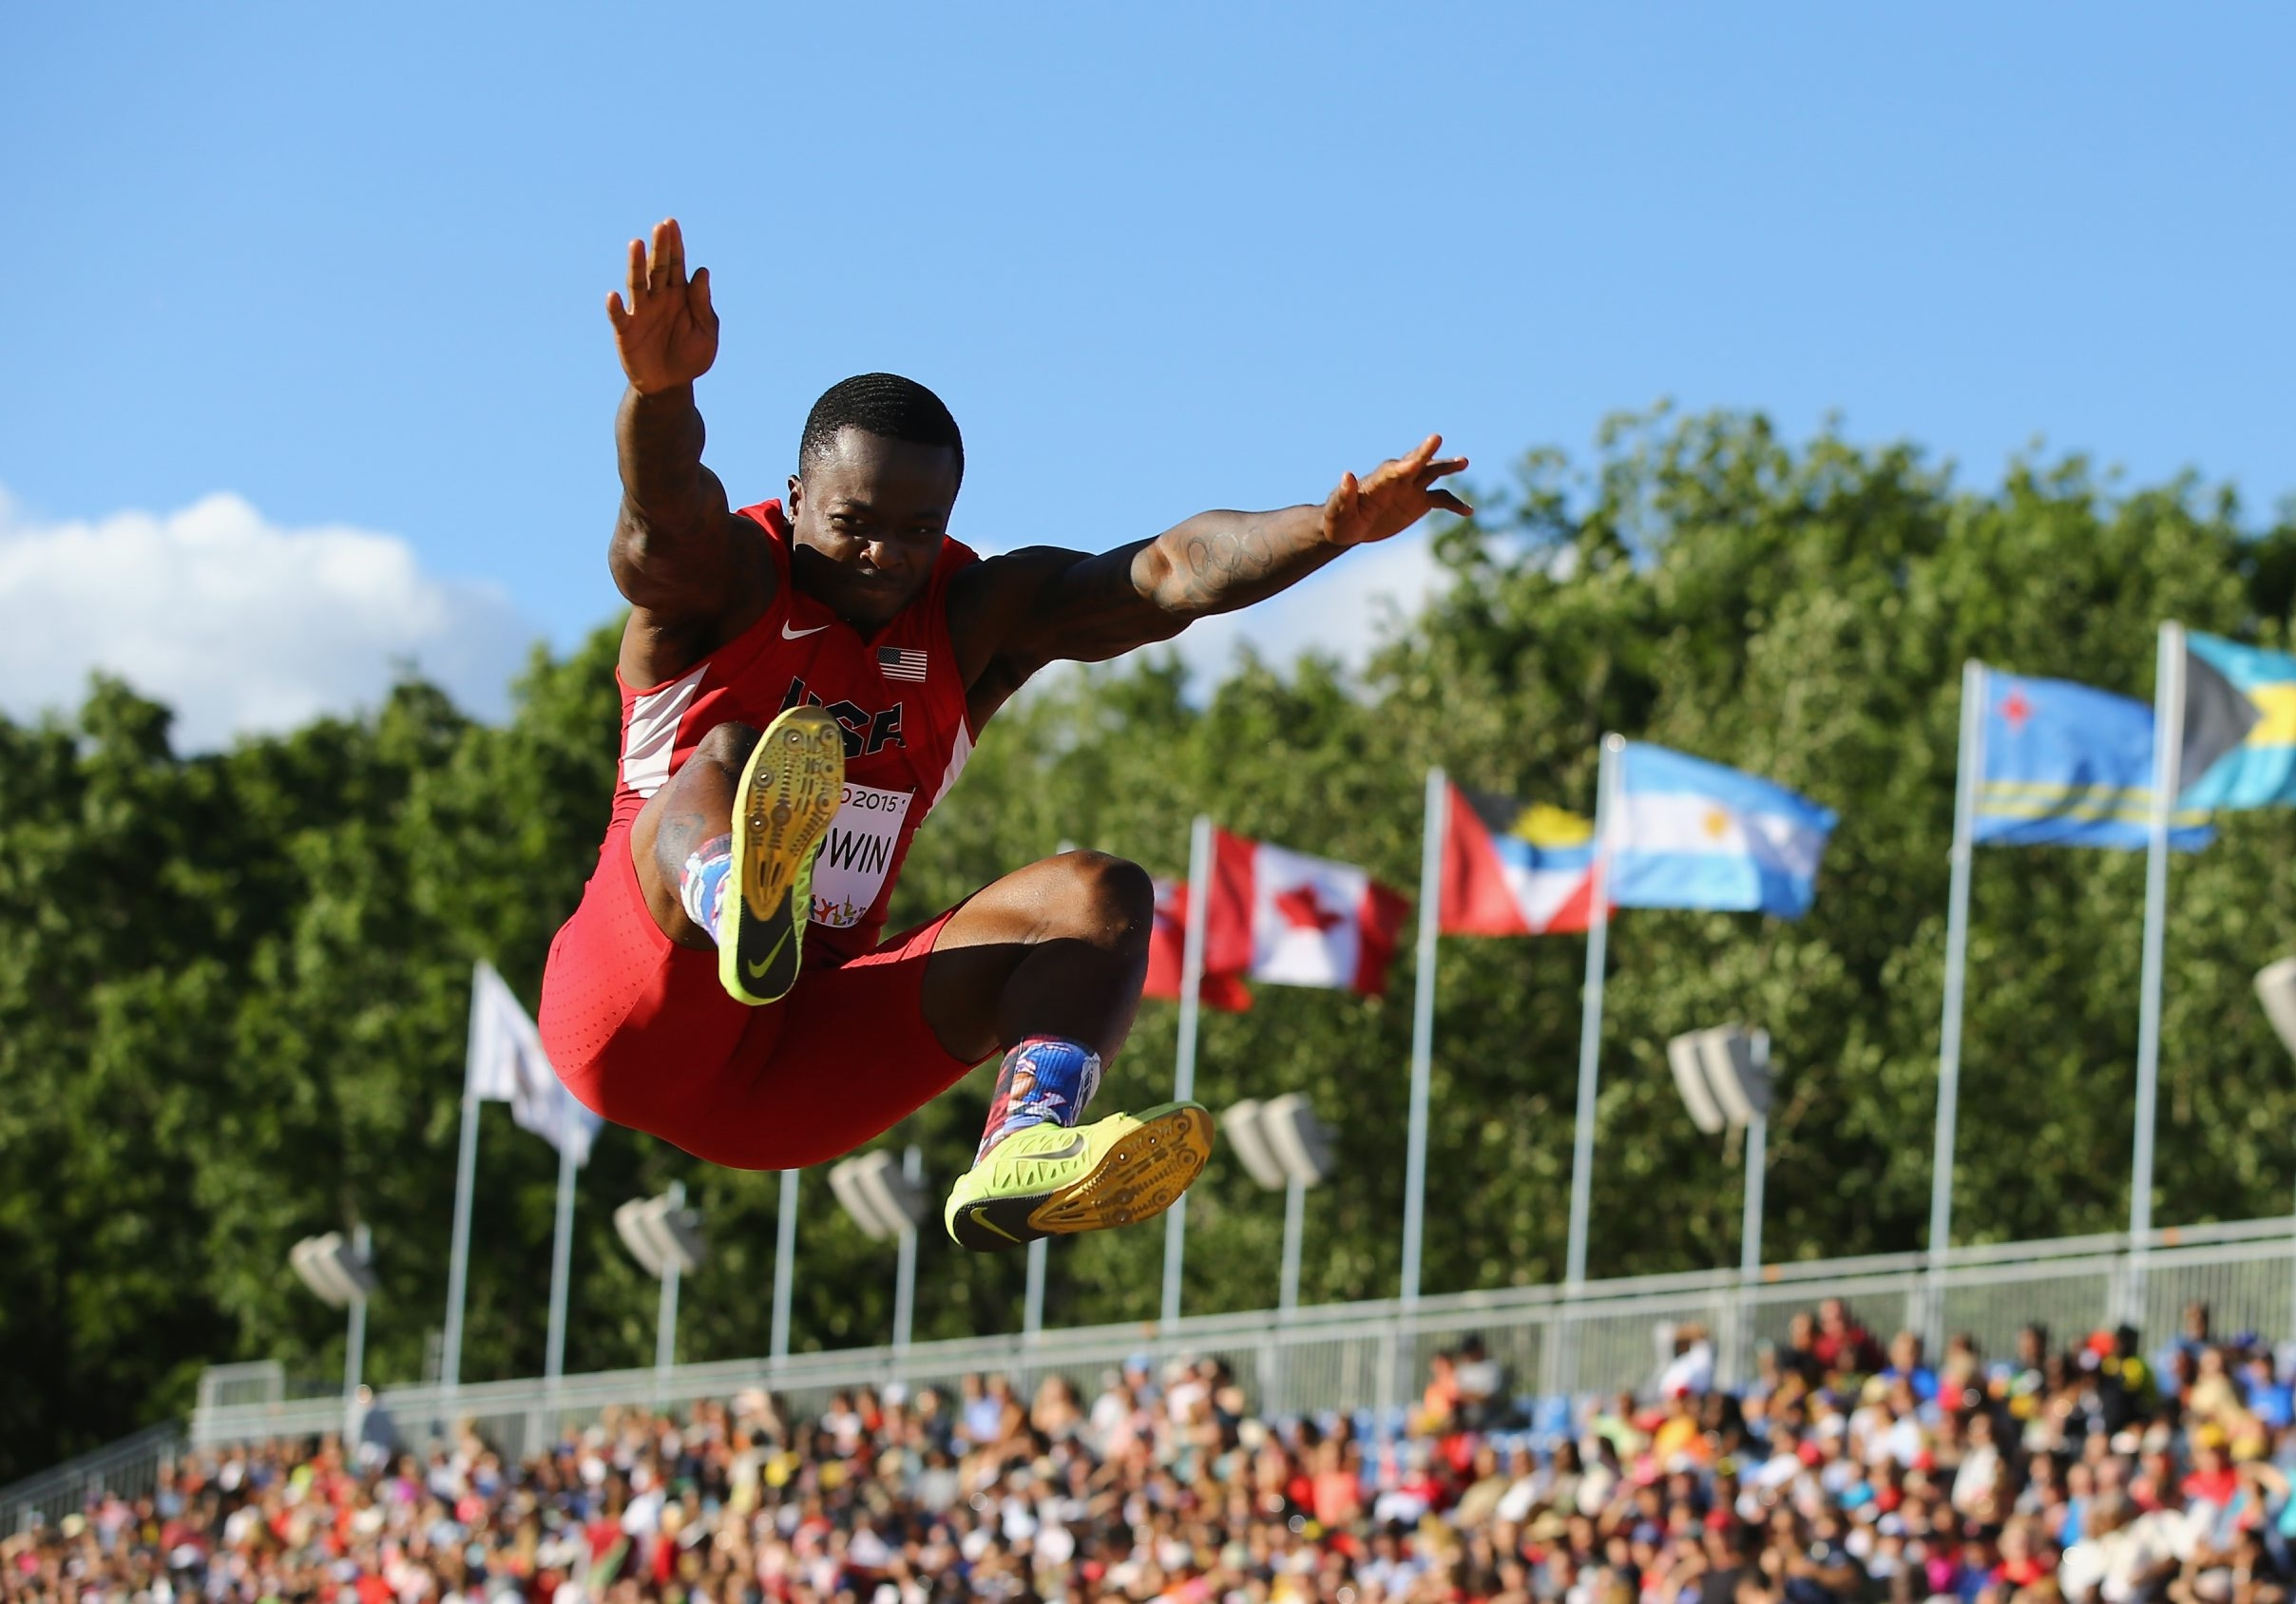 Bills receiver Marquise Goodwin fell short in qualifying for the long jump at the Rio Olympics.